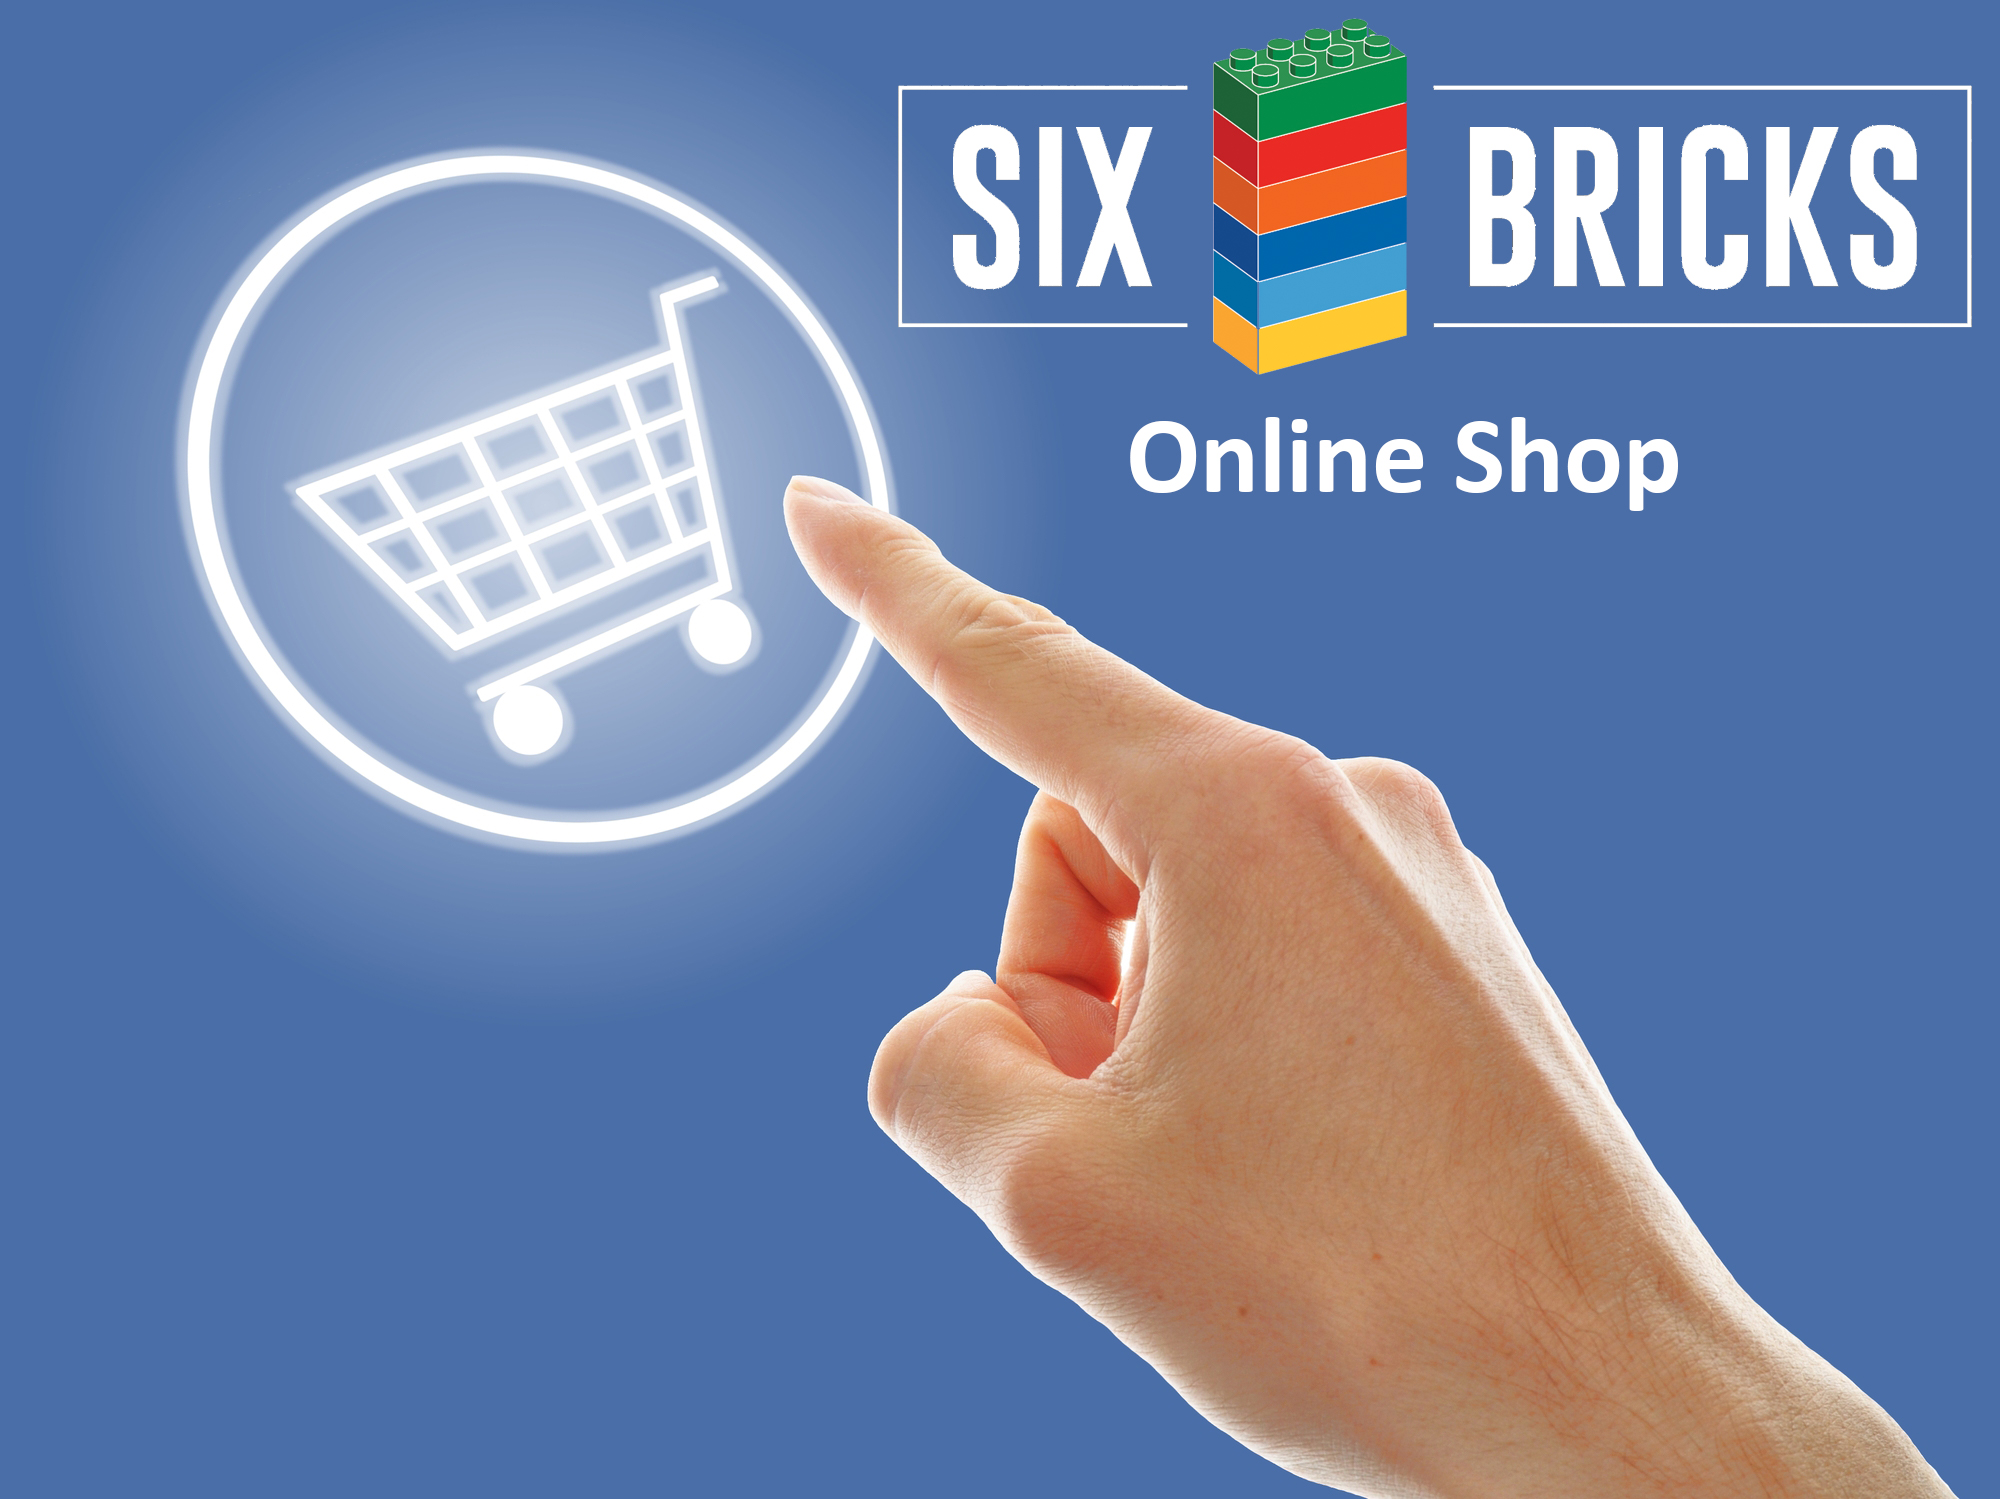 Buy Six Bricks Materials and Resources